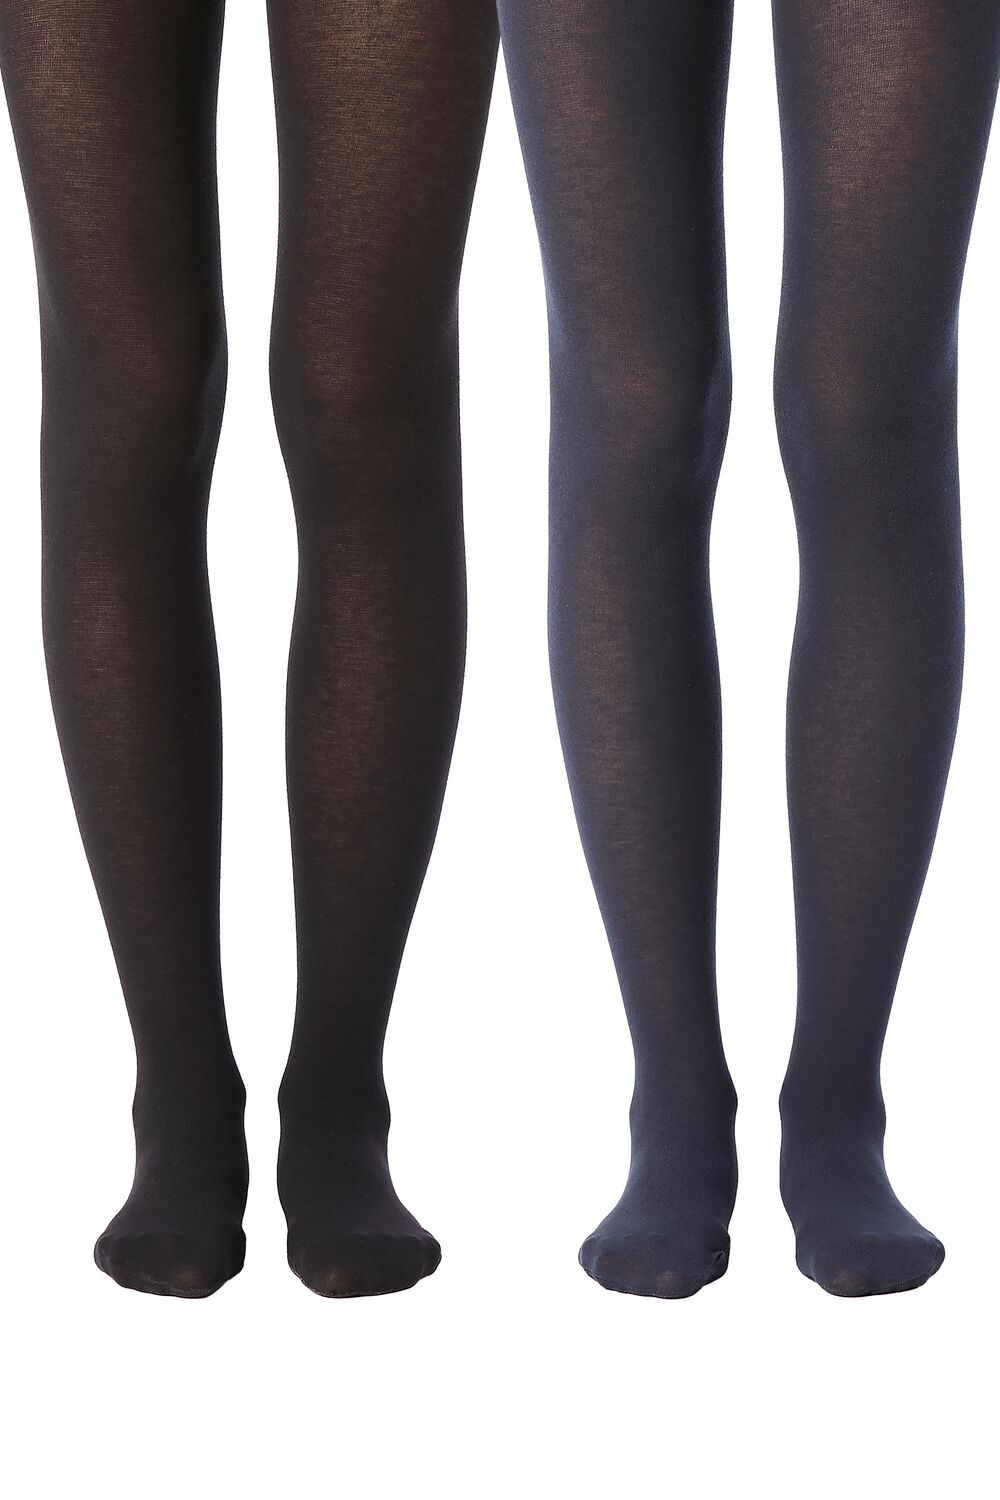 Cotton Tights - 2 Pack